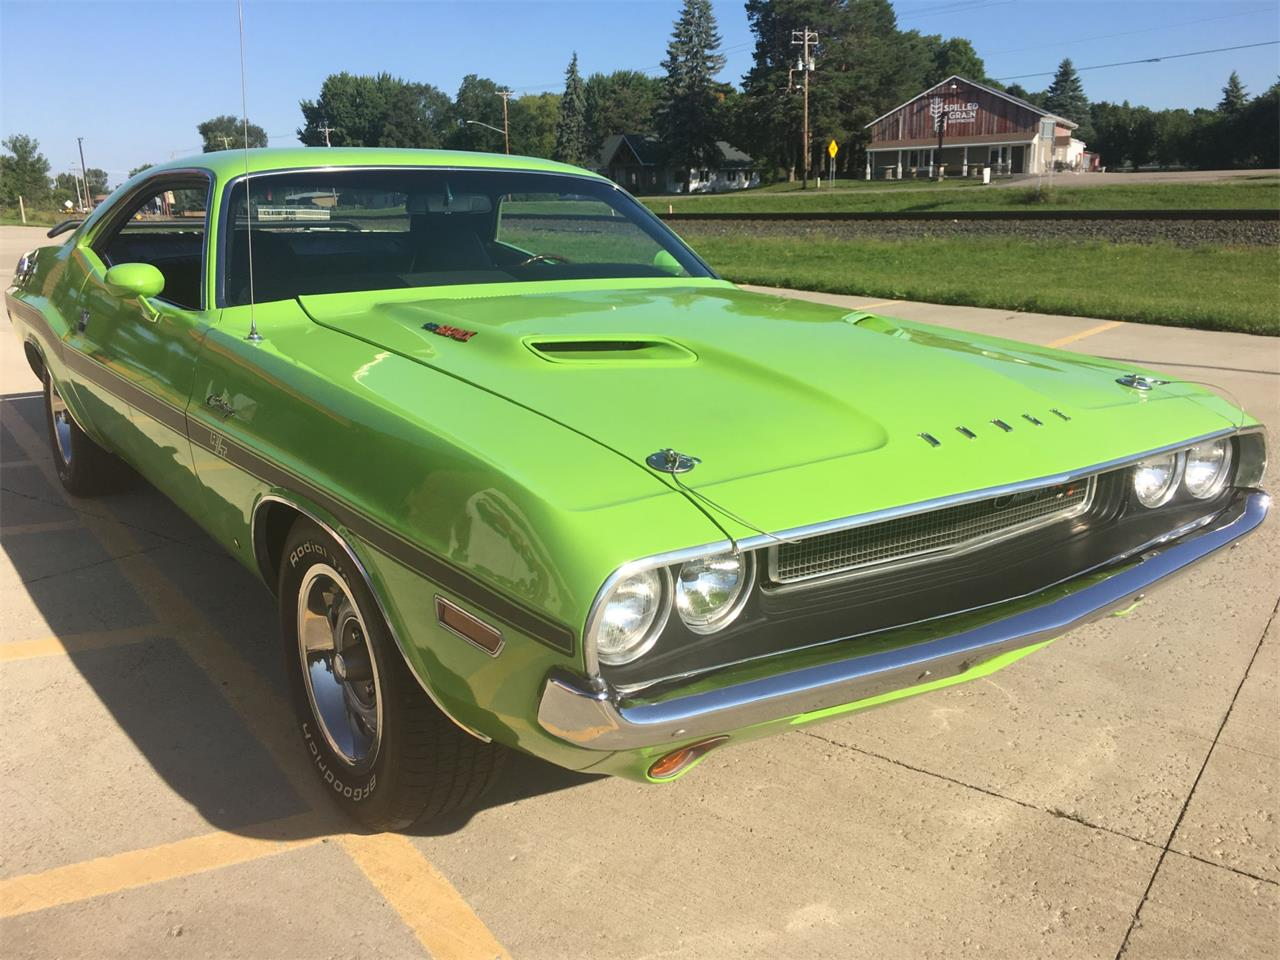 1970 Dodge Challenger R/T for sale in Annandale, MN – photo 7